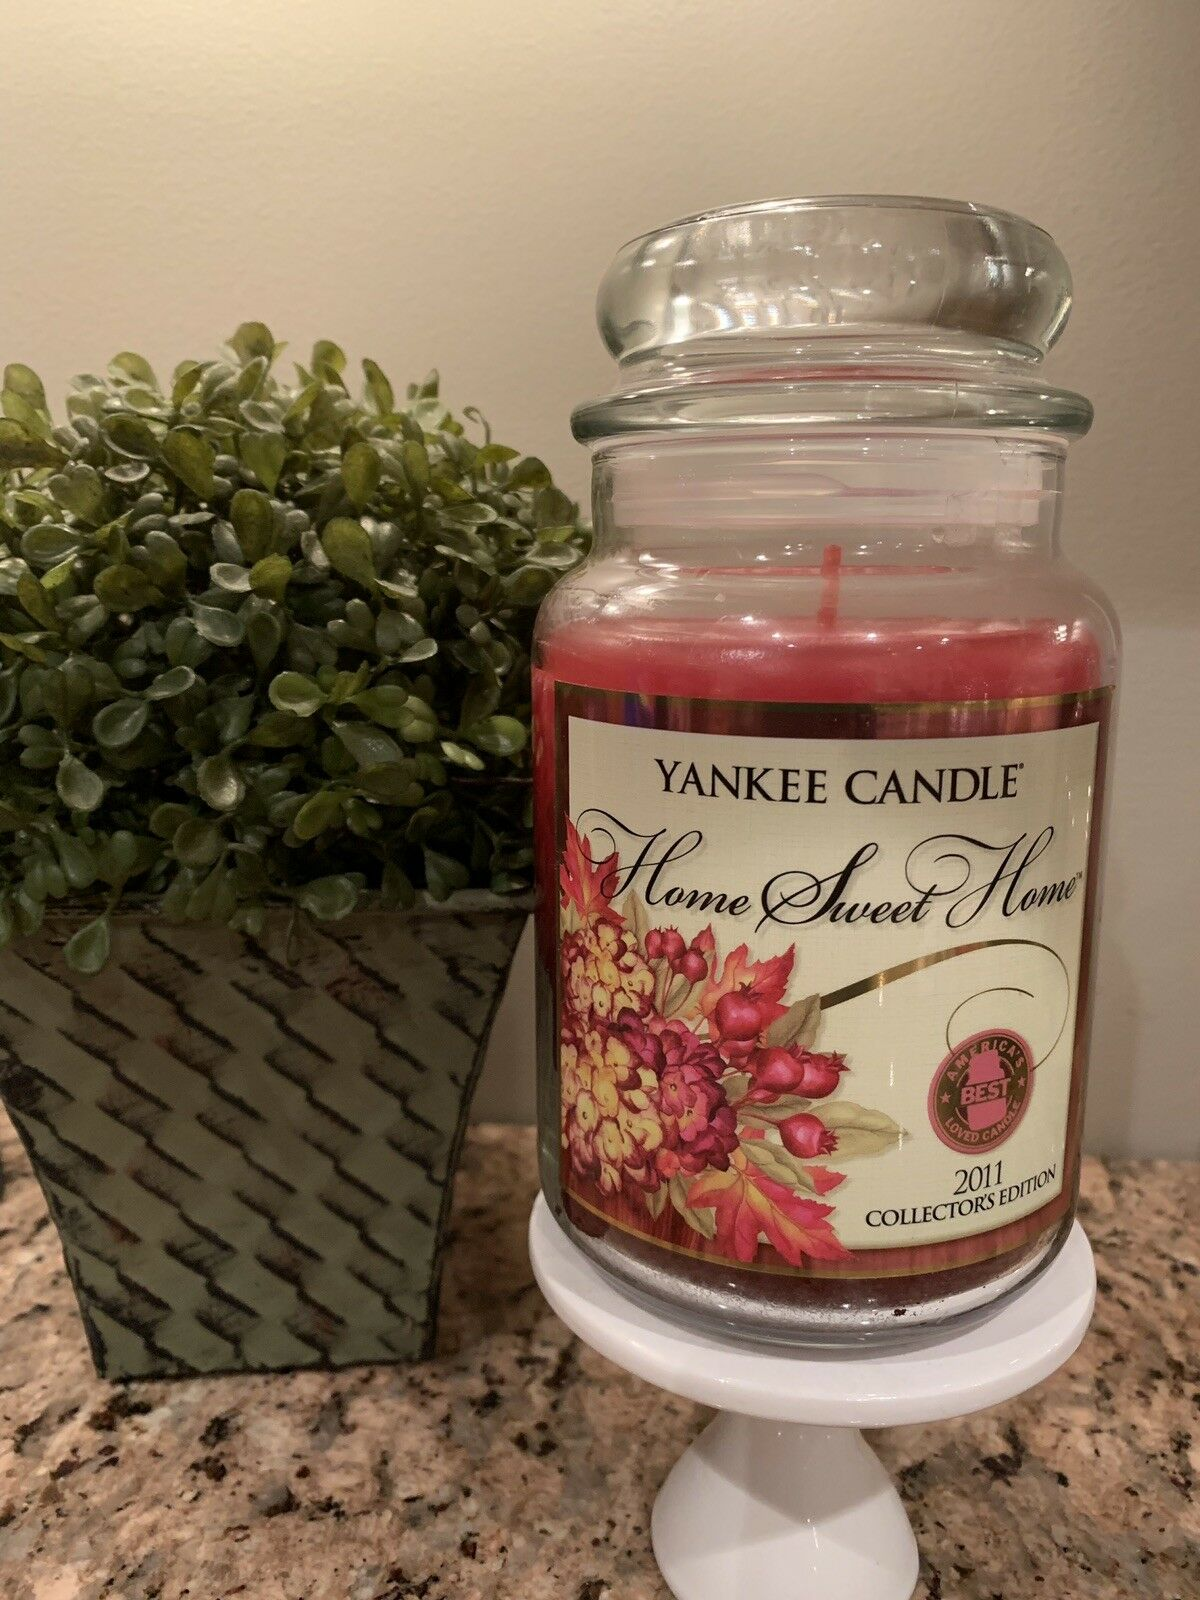 Yankee Candle Home Sweet Home 2011 Collector Edition  22 oz Jar RARE & RETIRED